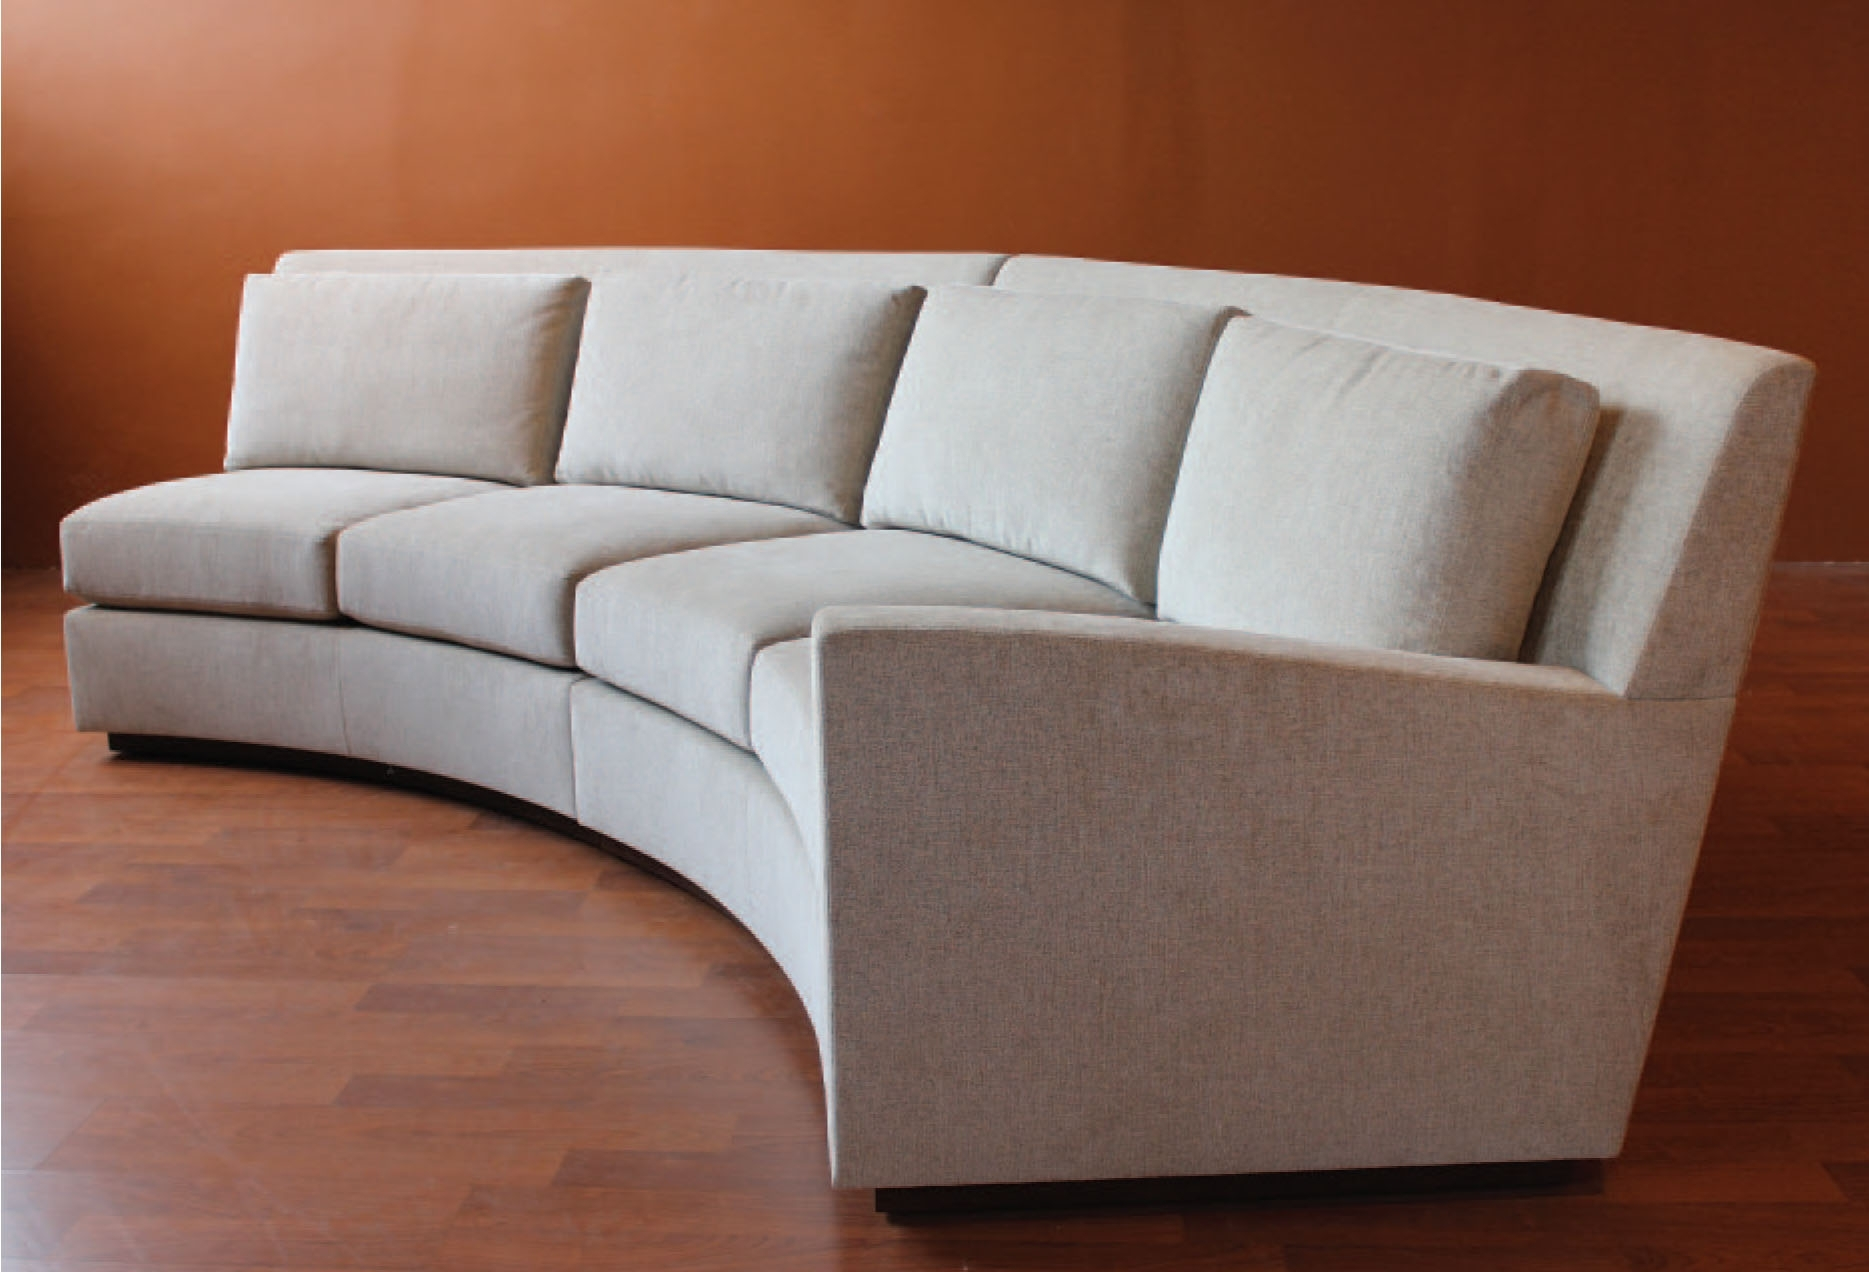 Loveseat : Curved Sectional Sofas For Small Spaces Loveseat Styles Intended For Rounded Sofas (View 8 of 10)